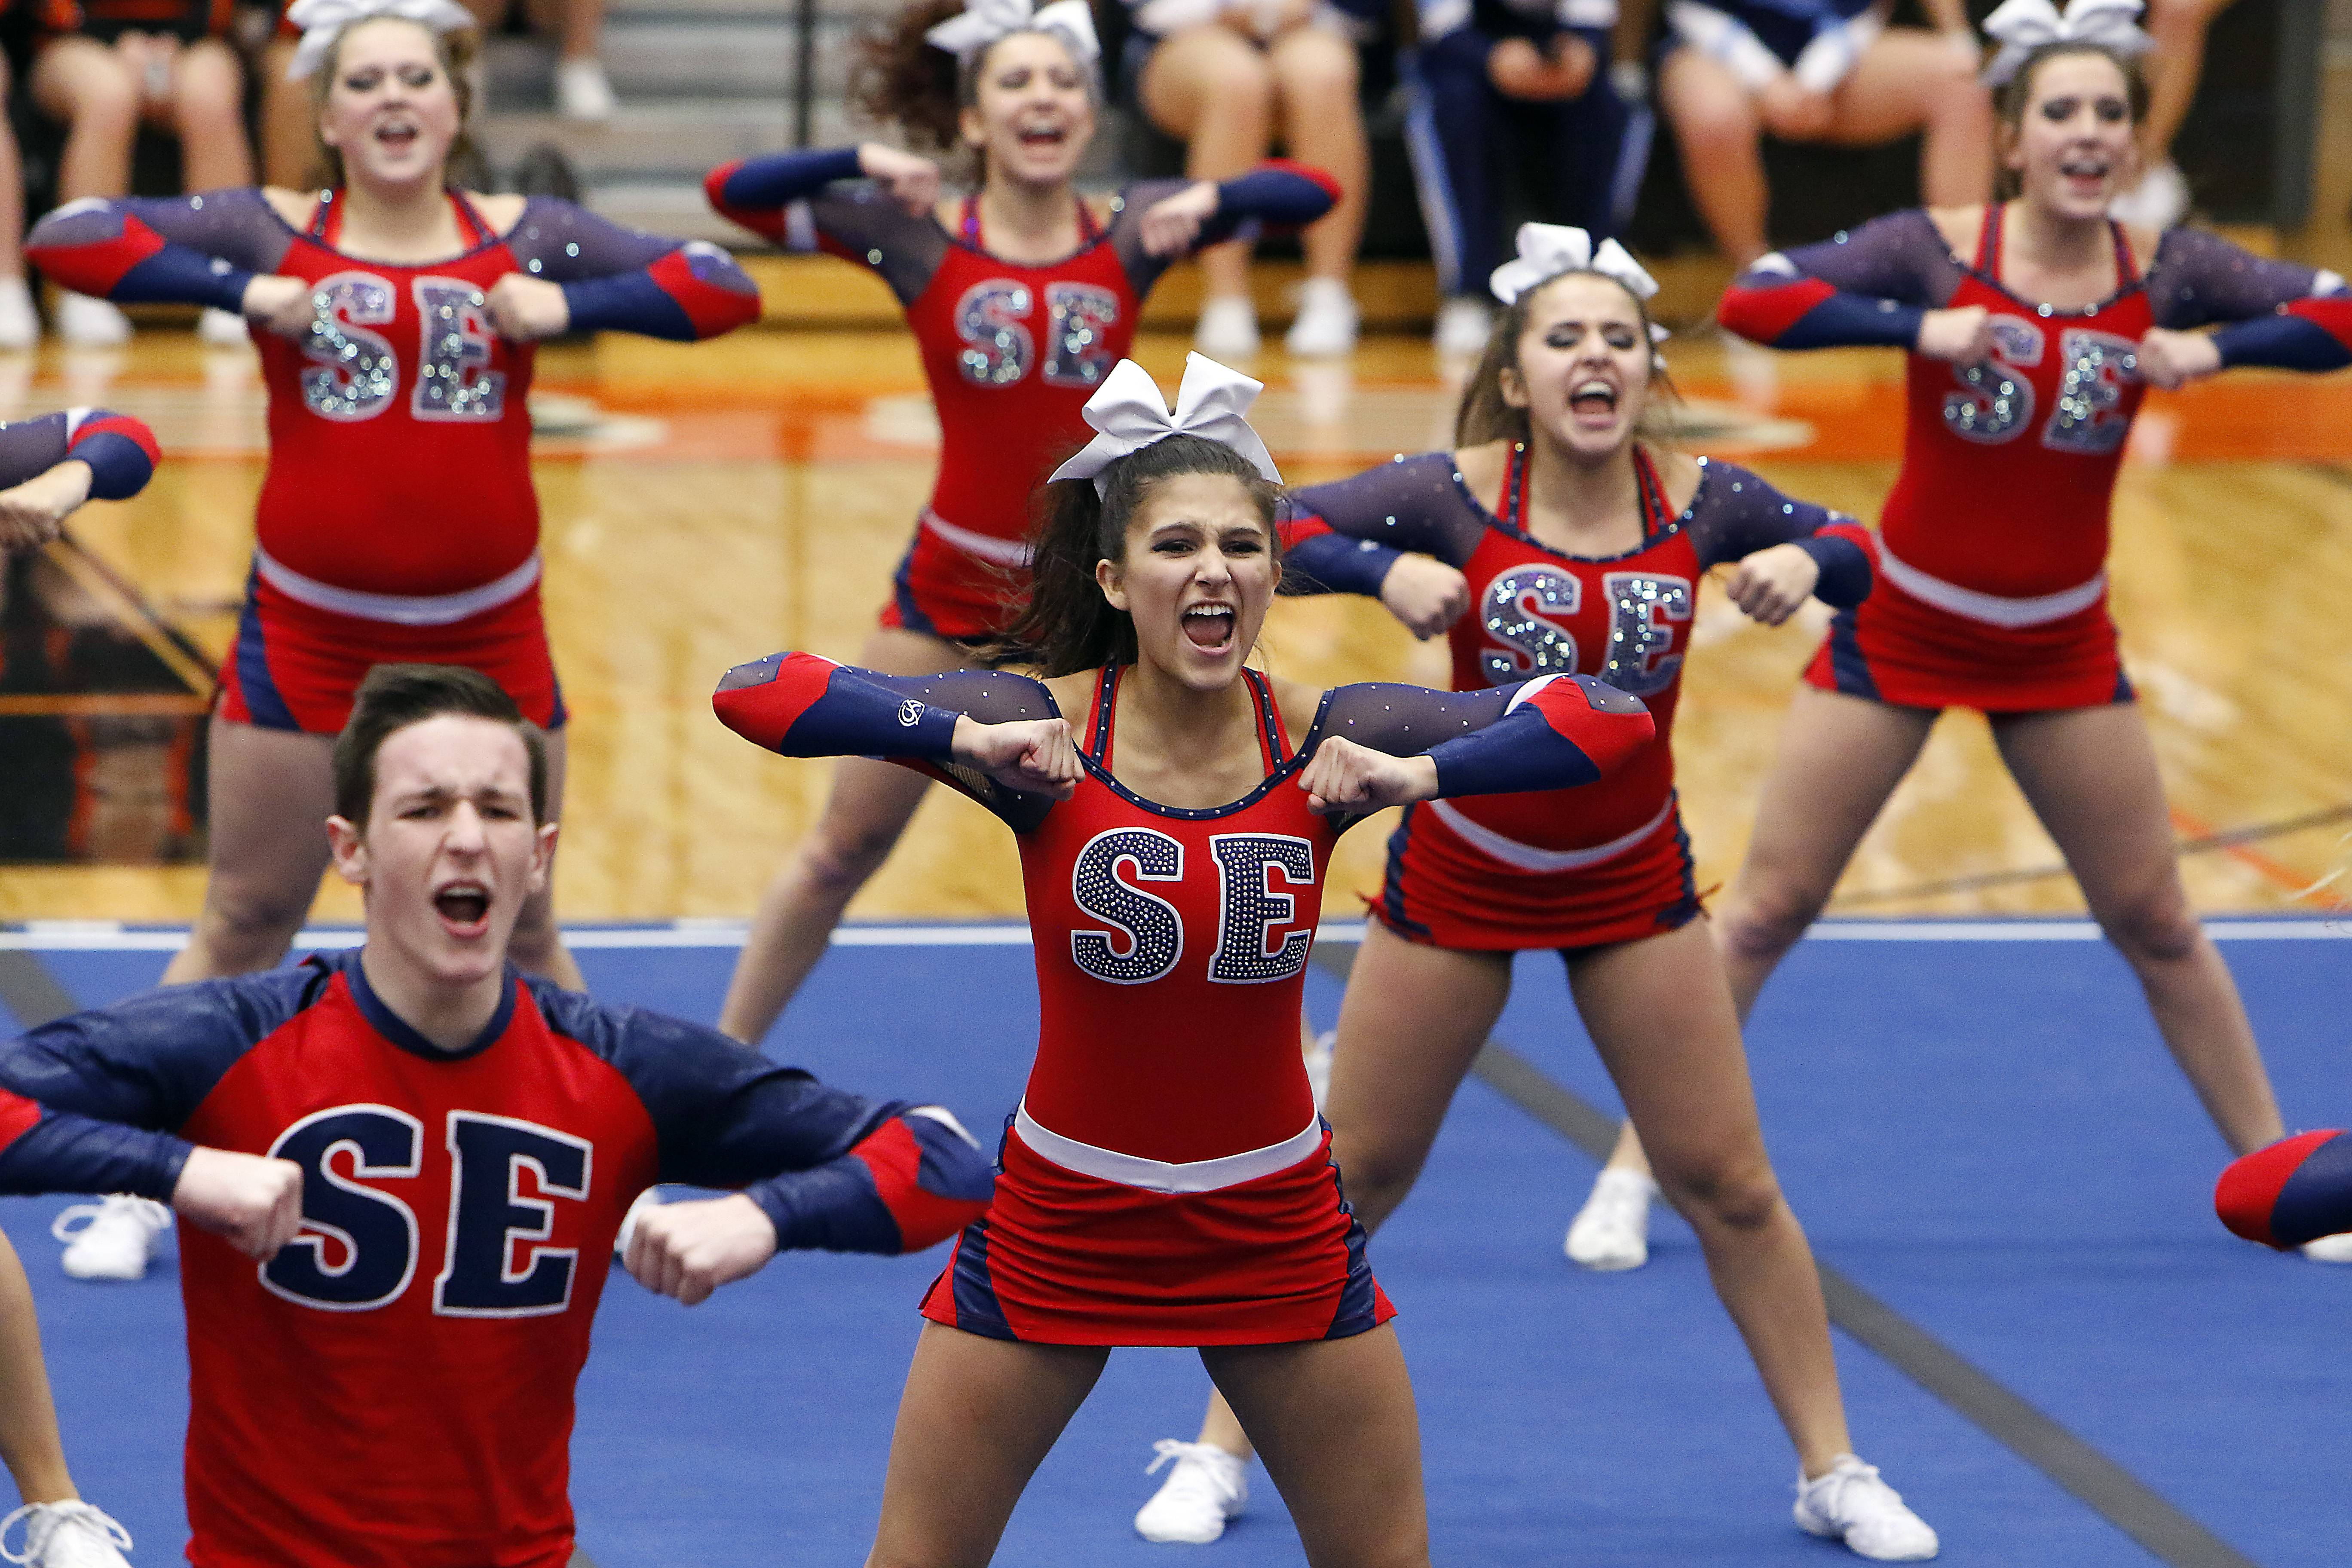 Brian Hill/bhill@dailyherald.comSouth Elgin competes Saturday during the IHSA sectional cheerleading competition in DeKalb.